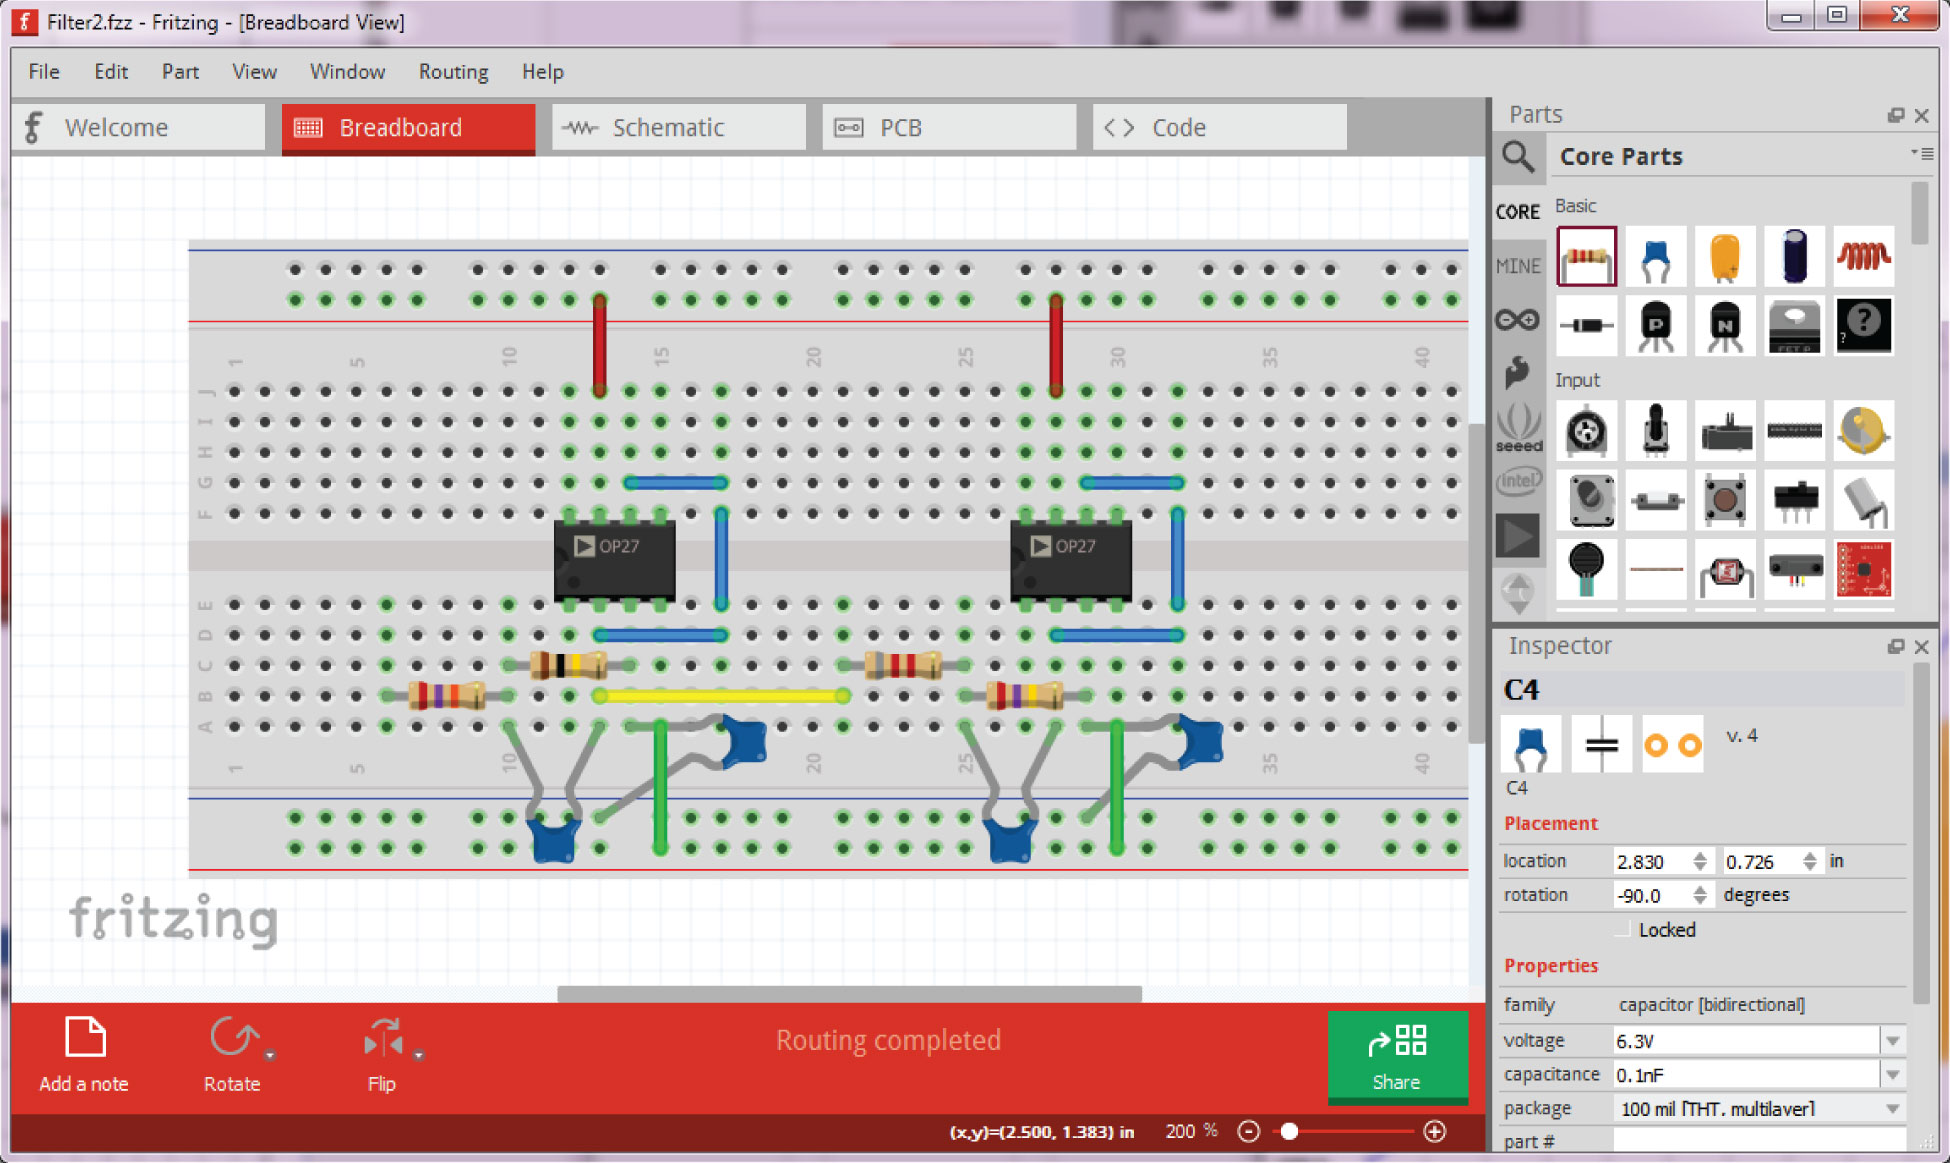 medium resolution of fritzing tool provides a breadboard view of the circuit